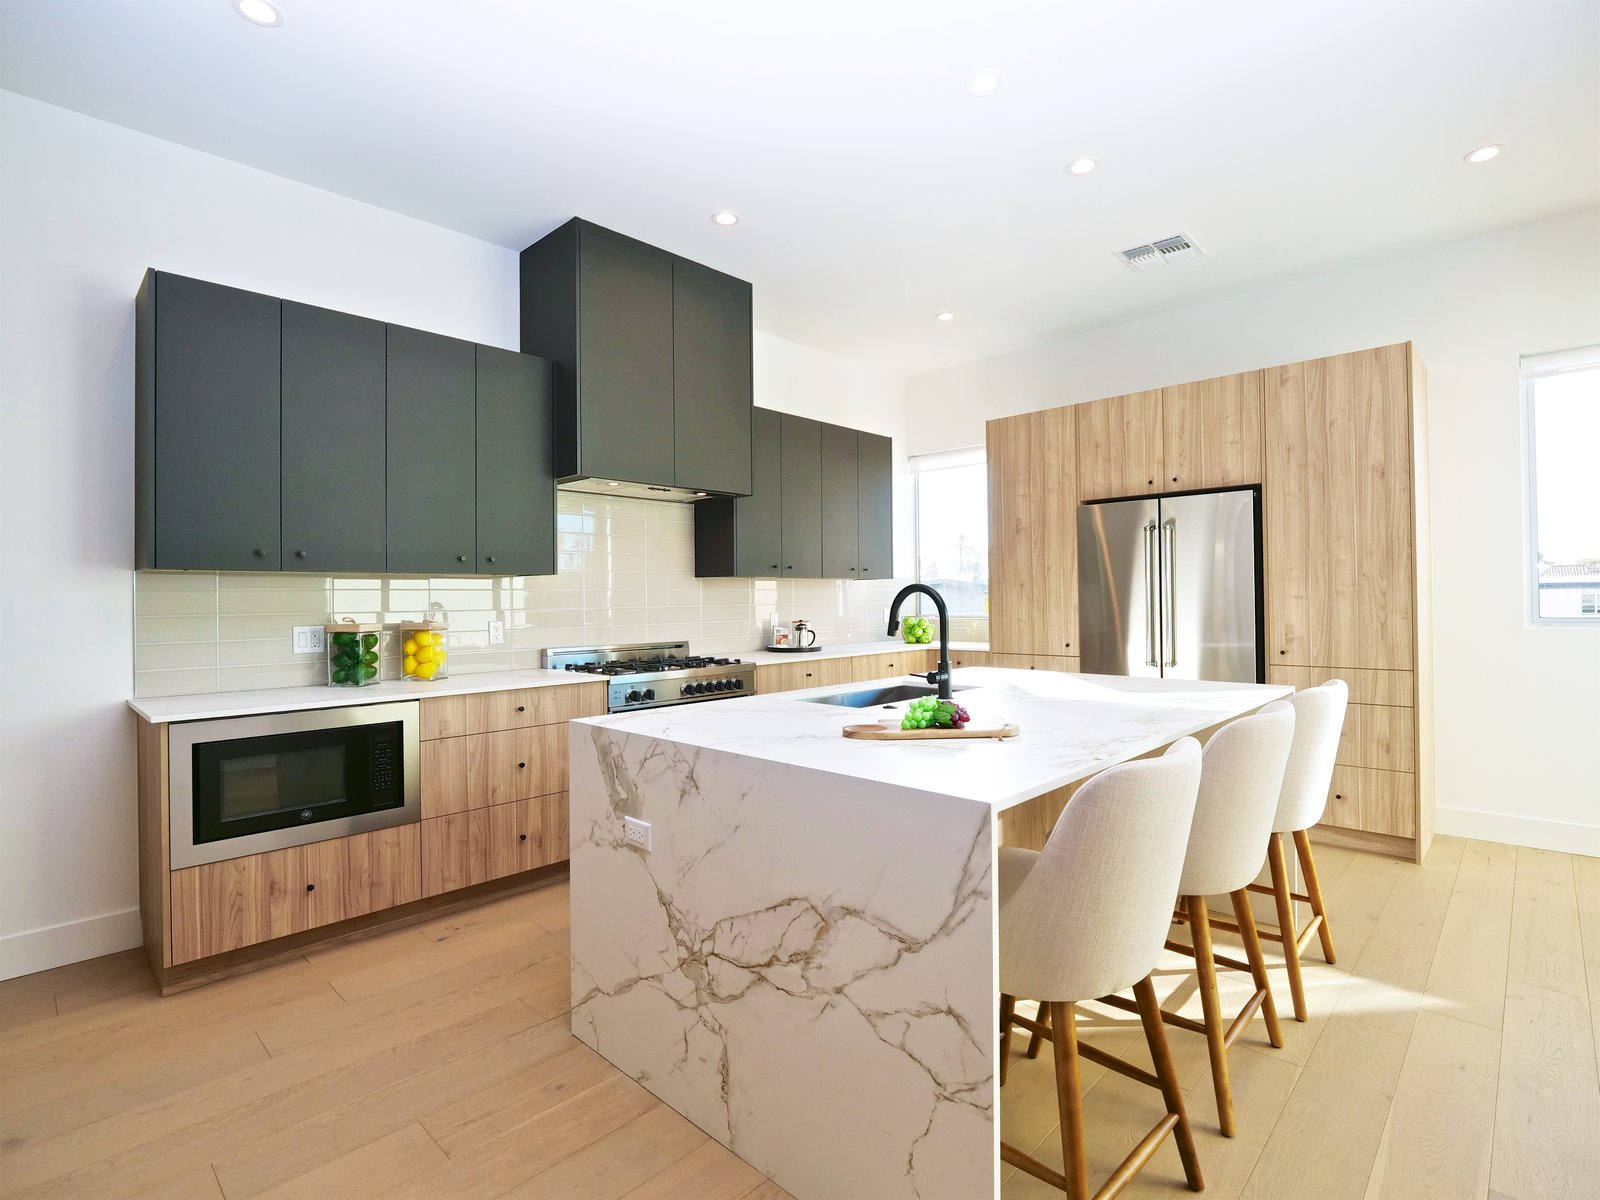 Kitchen, Medium Hardwood Floor, Ceiling Lighting, Refrigerator, Range, Microwave, Engineered Quartz Counter, Wood Cabinet, Undermount Sink, and Dishwasher Silestone Dekton countertops, a waterfall island and Bertazzoni appliance package.   Stacks Modern